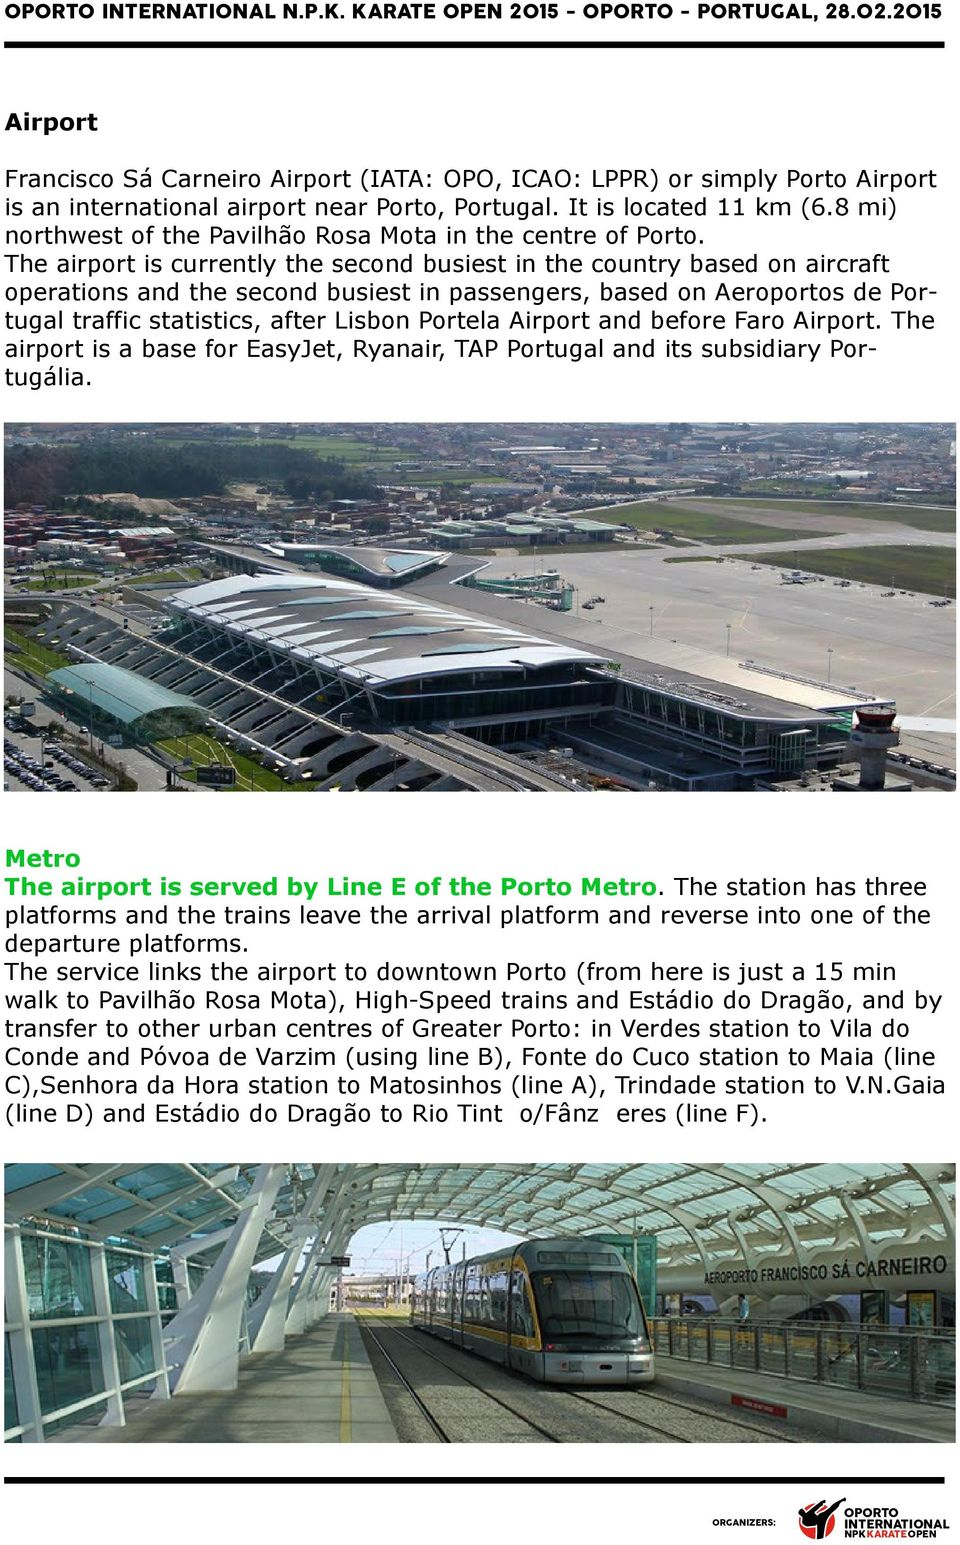 The airport is currently the second busiest in the country based on aircraft operations and the second busiest in passengers, based on Aeroportos de Portugal traffic statistics, after Lisbon Portela